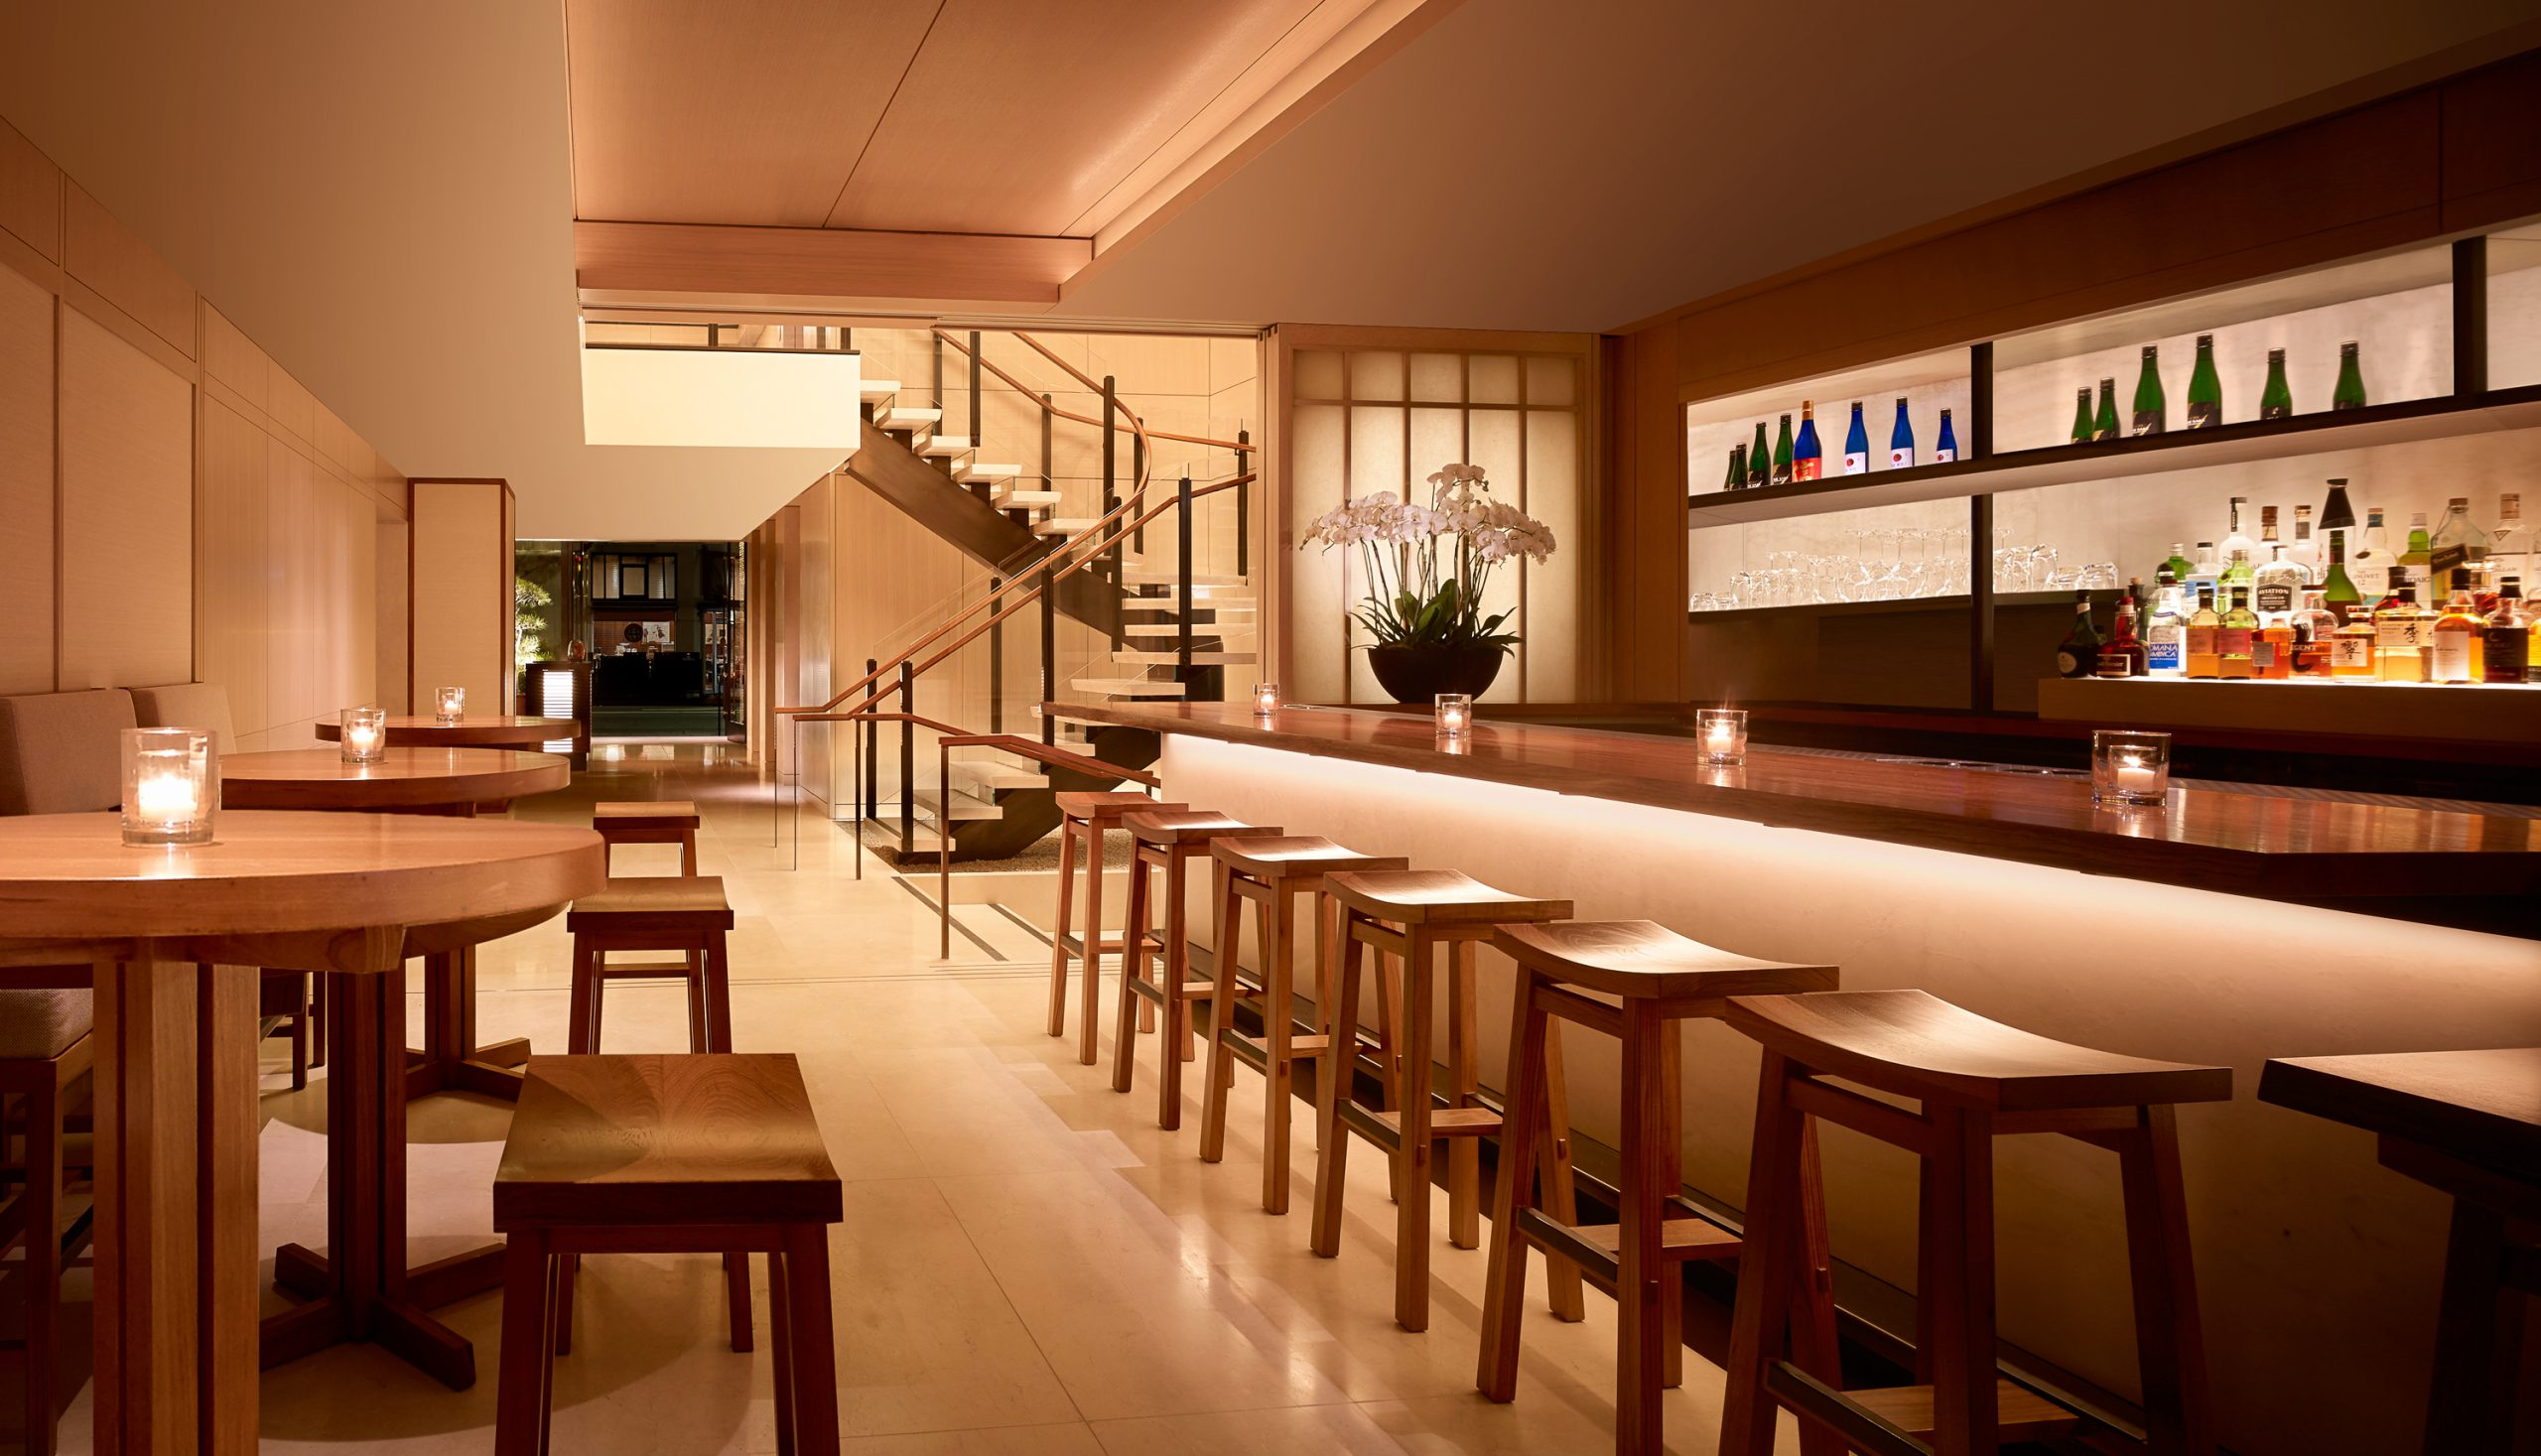 Nobu lobby and bar with staircase